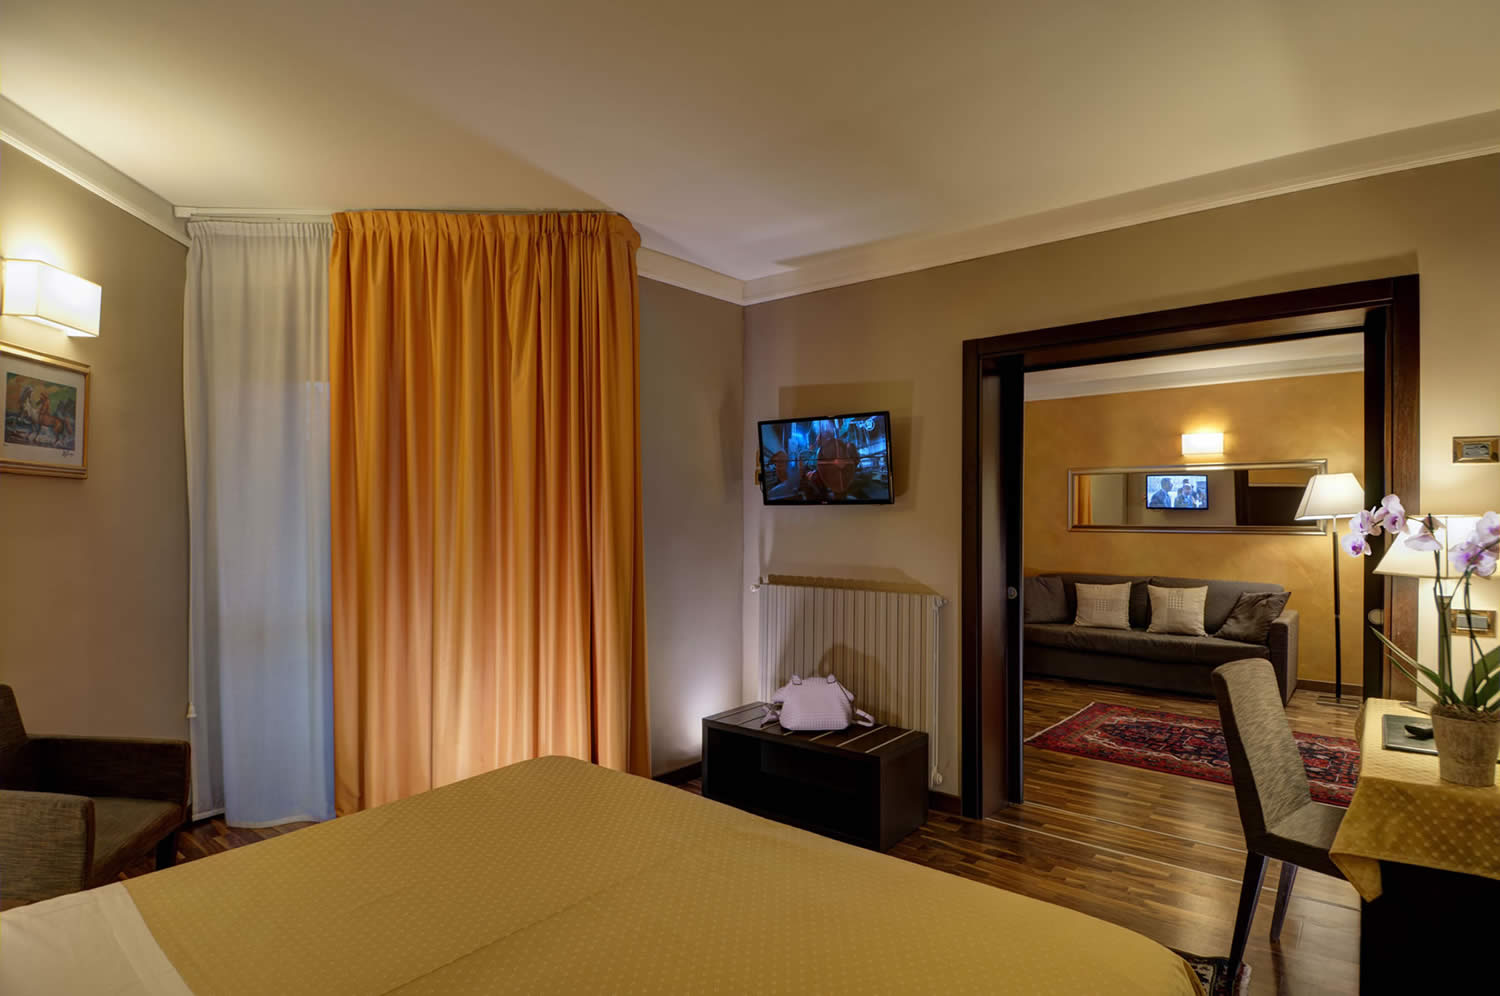 HEADER_CAMERE Chambres & Suites - Hotel Petrarca